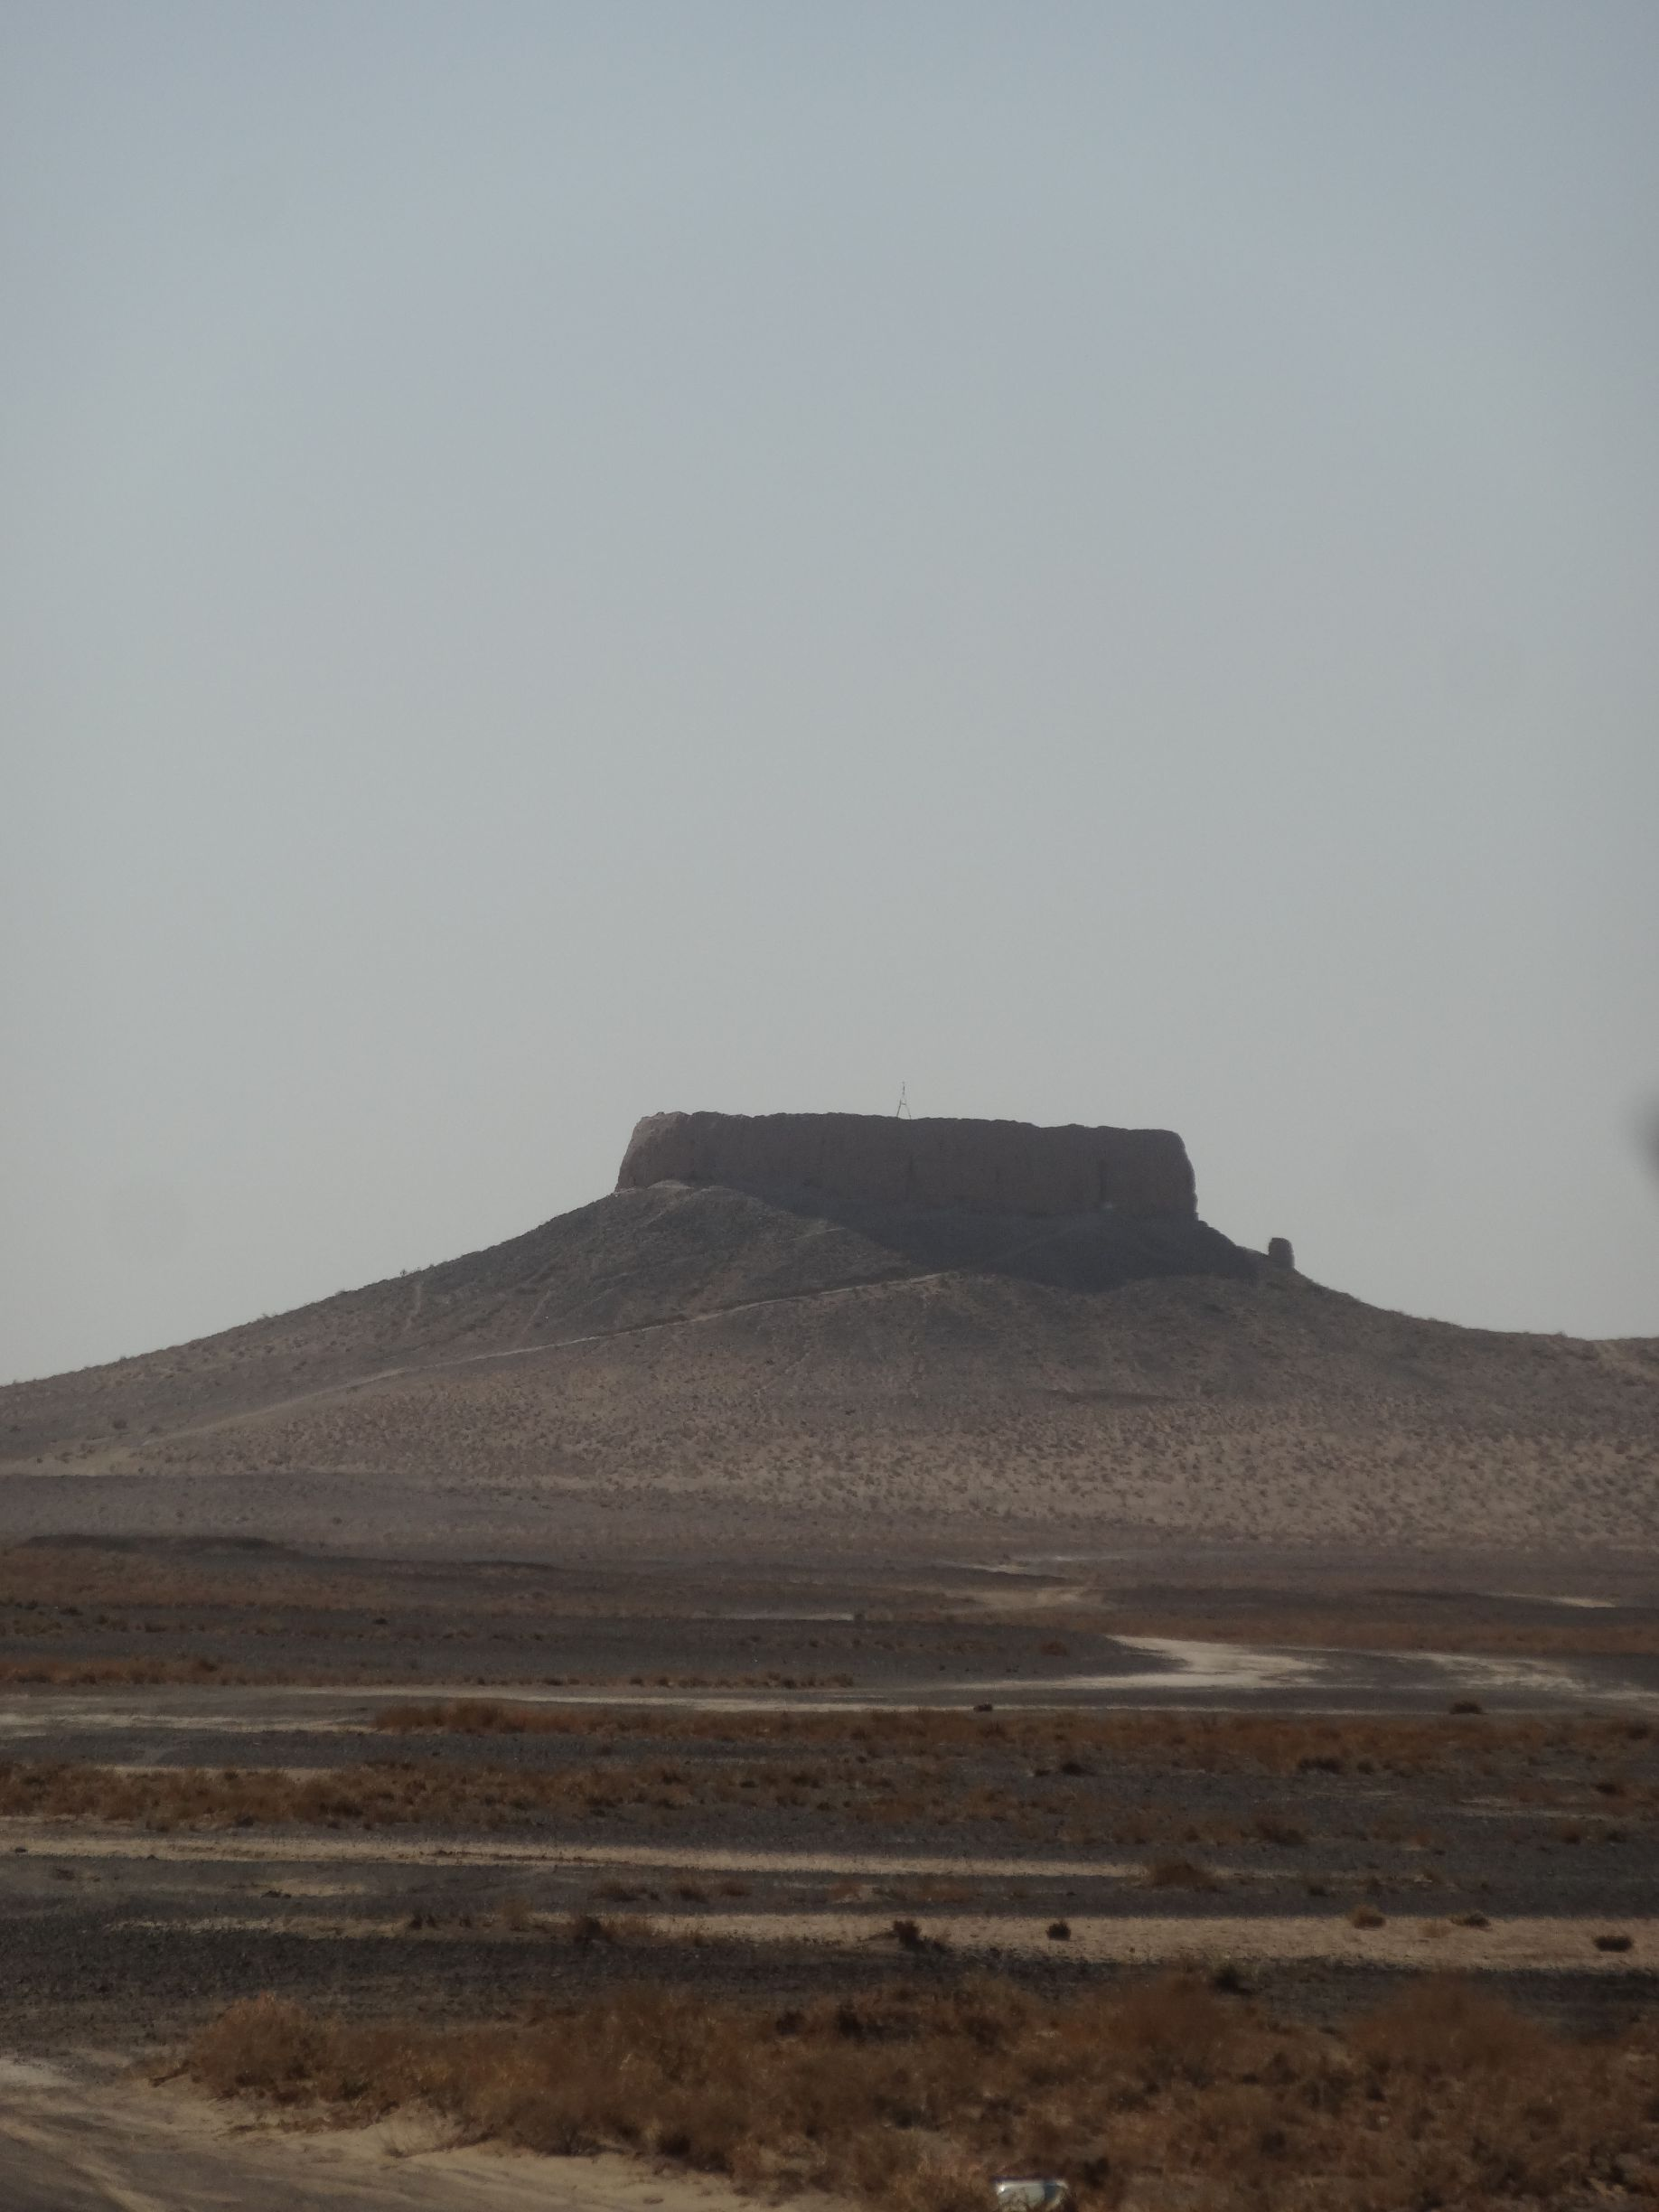 Chilpyk, a zoroastrian dahma (tower of silence)